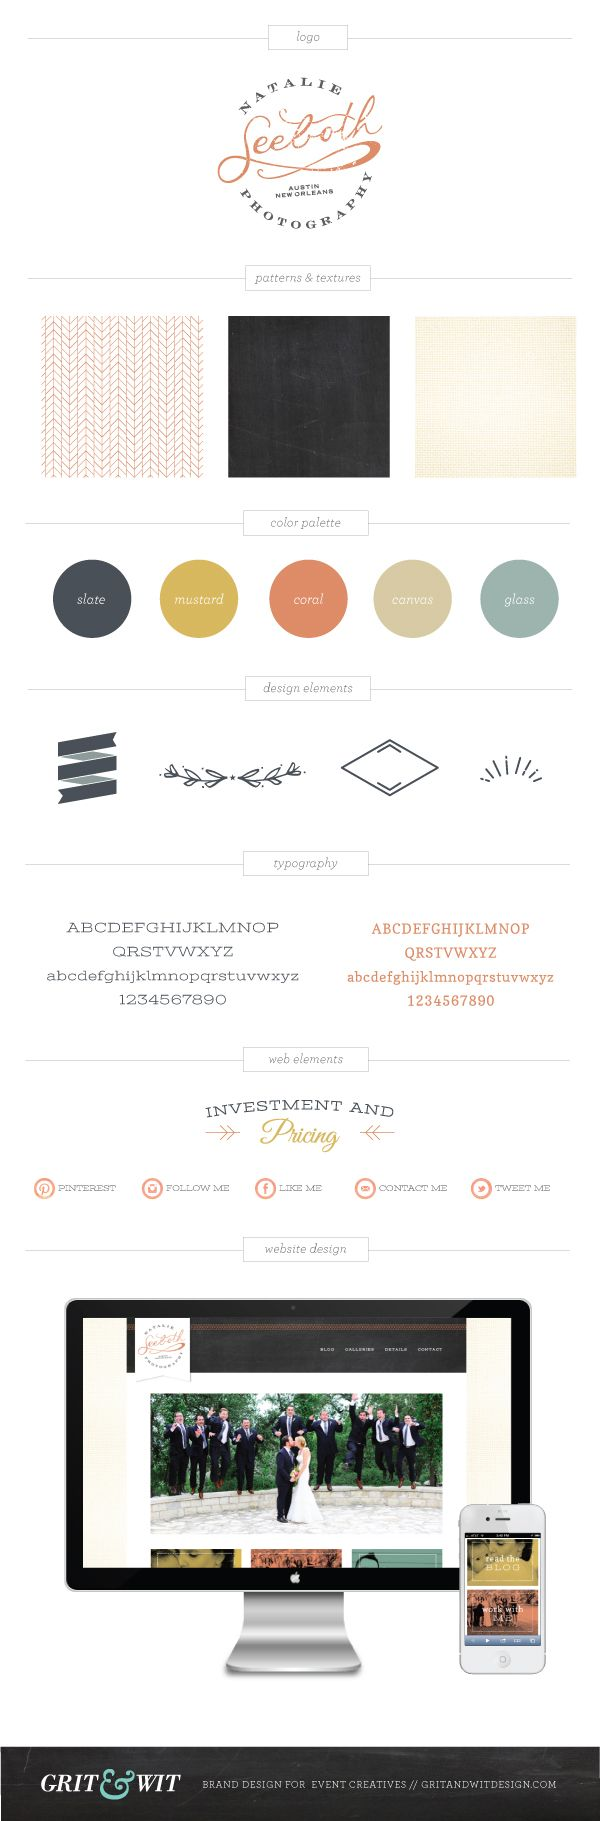 Natalie Seeboth Branding // via Grit & Wit // Brand Design for Photographers, Stylists and Event Creatives